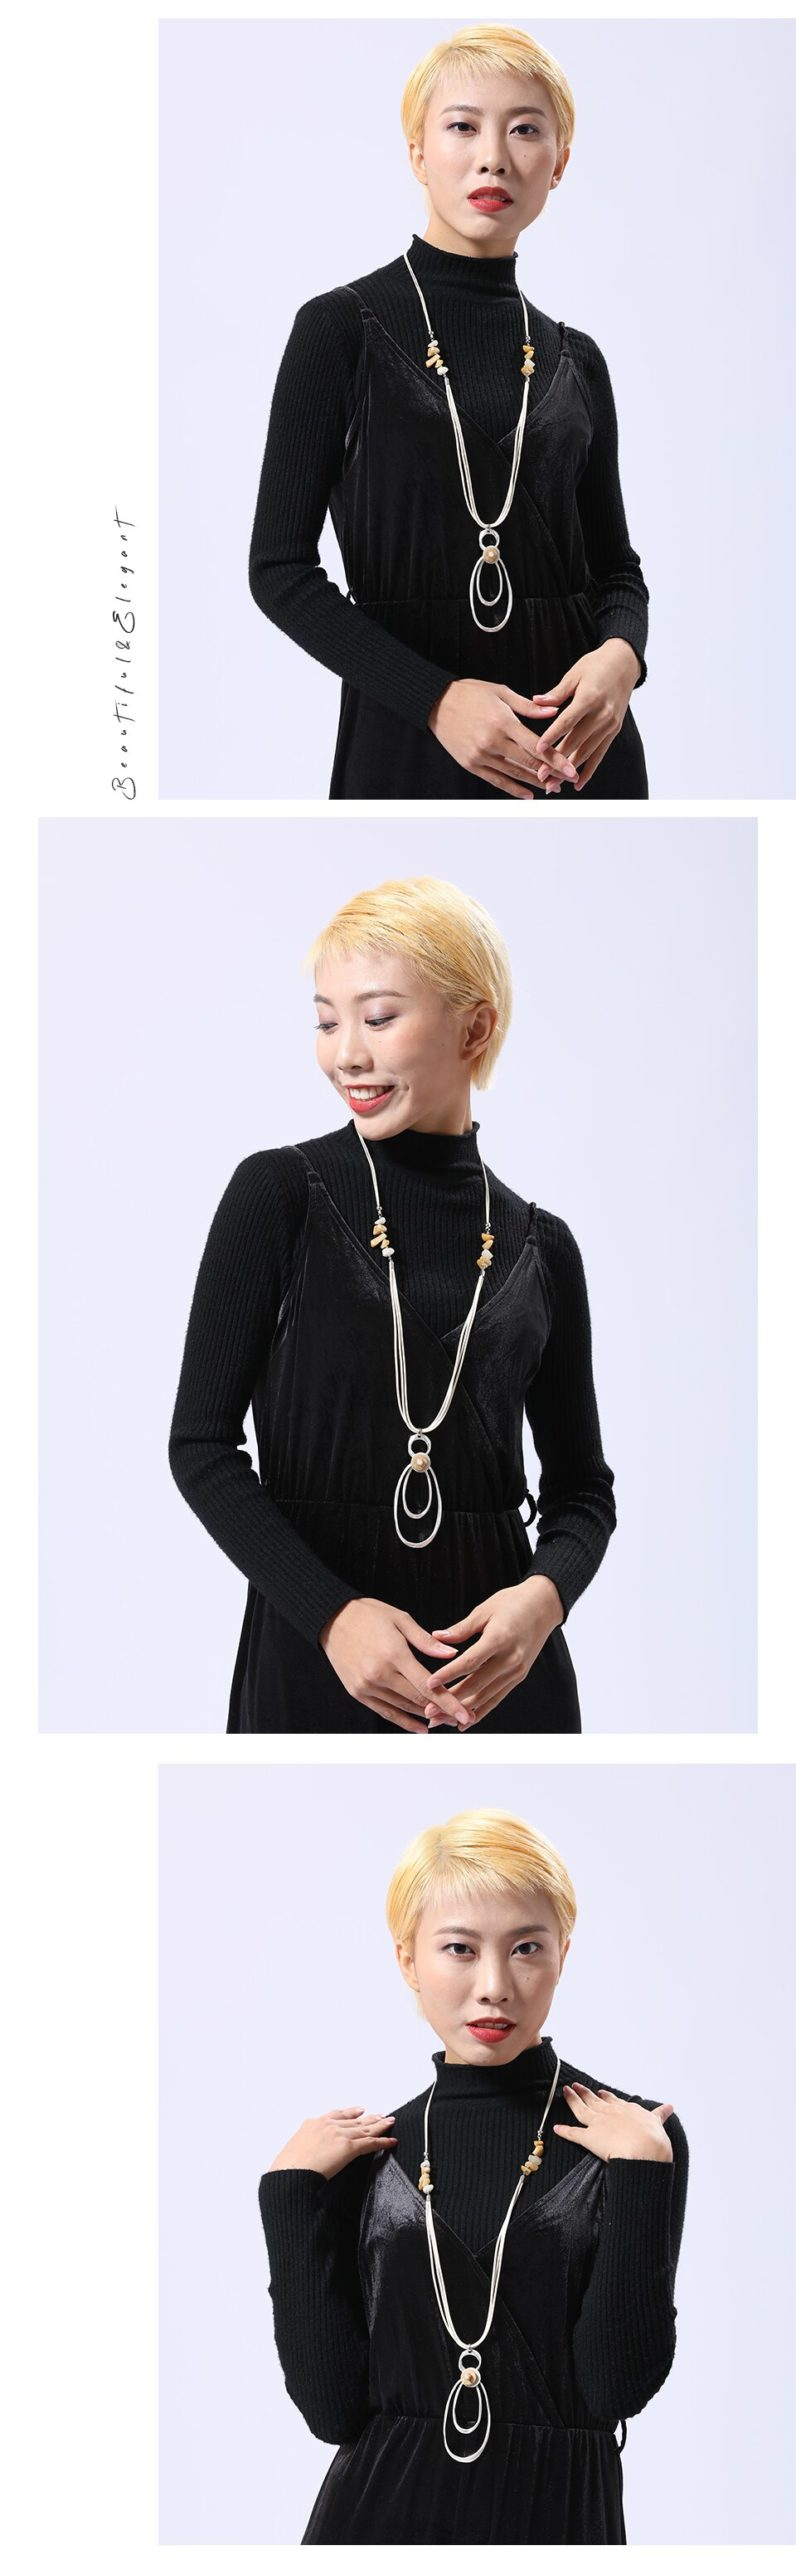 Silver Color Pendants Necklace Leather Long Chain Suspension Statement Decoration Fashion Jewelry Gifts For Women Accessories